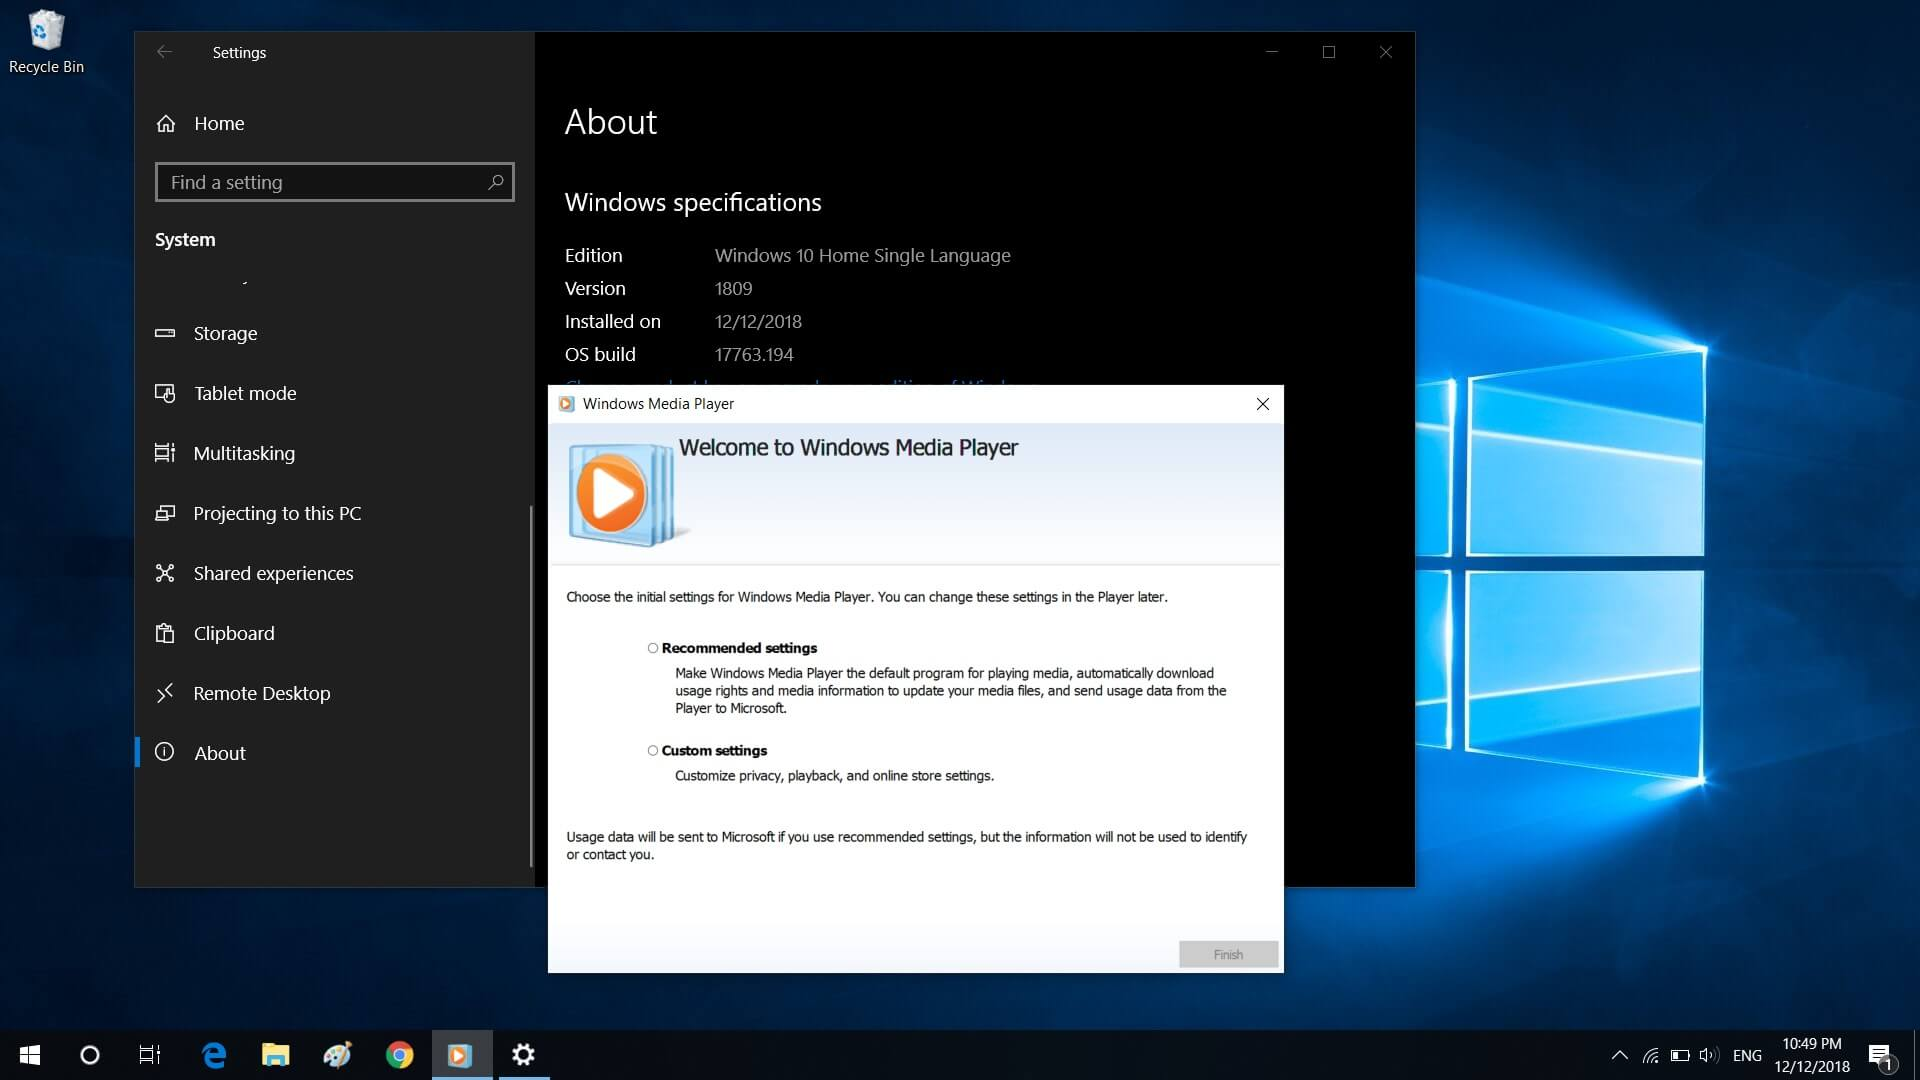 Windows 10's latest cumulative update fixes the Windows